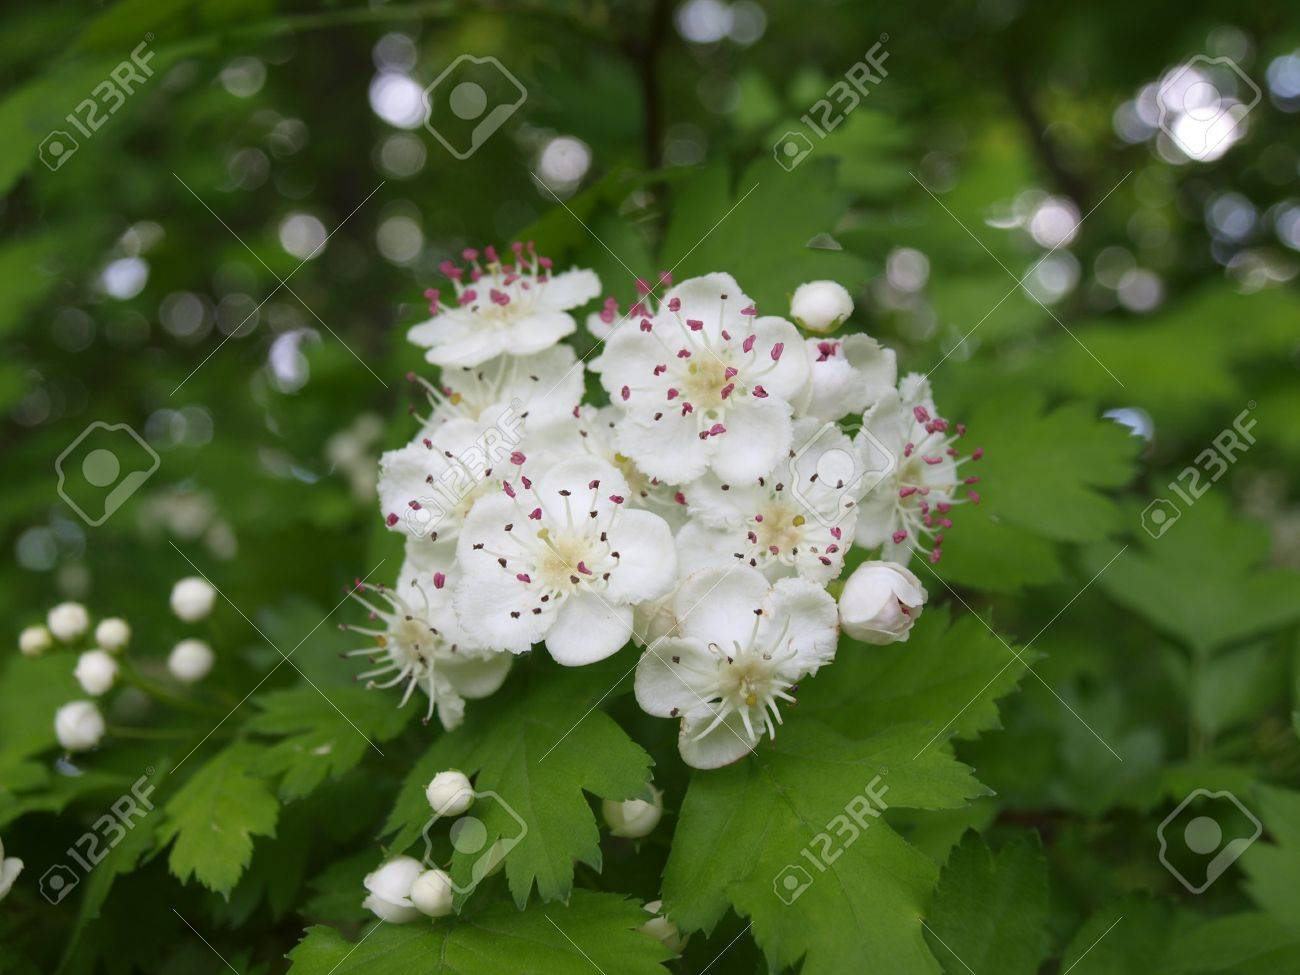 White Tree Flowers With Pink Anthers Stock Photo Picture And